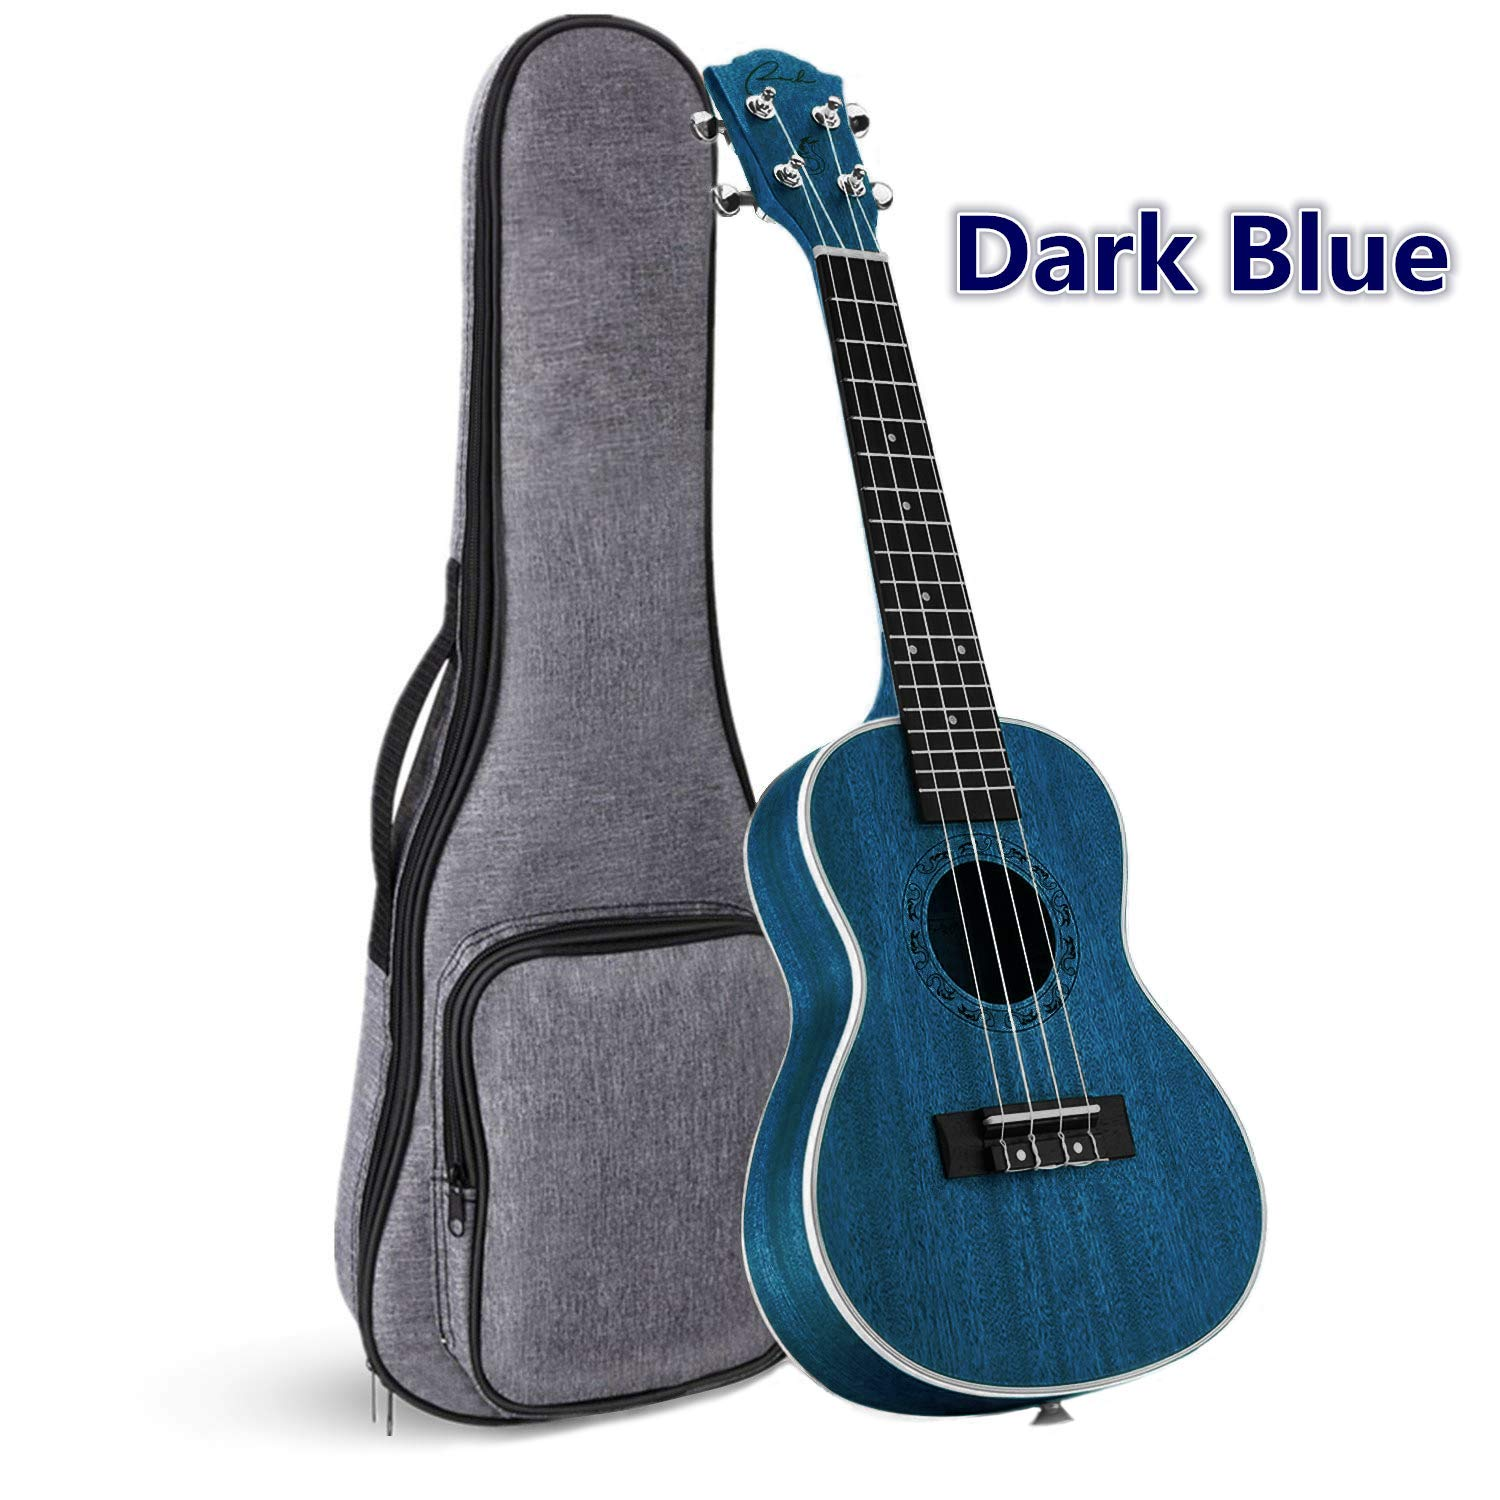 Concert Ukulele Ranch 23 inch Professional Wooden ukelele Instrument with Free Online 12 Lessons and Gig Bag - Small Hawaiian Guitar - Dark Blue